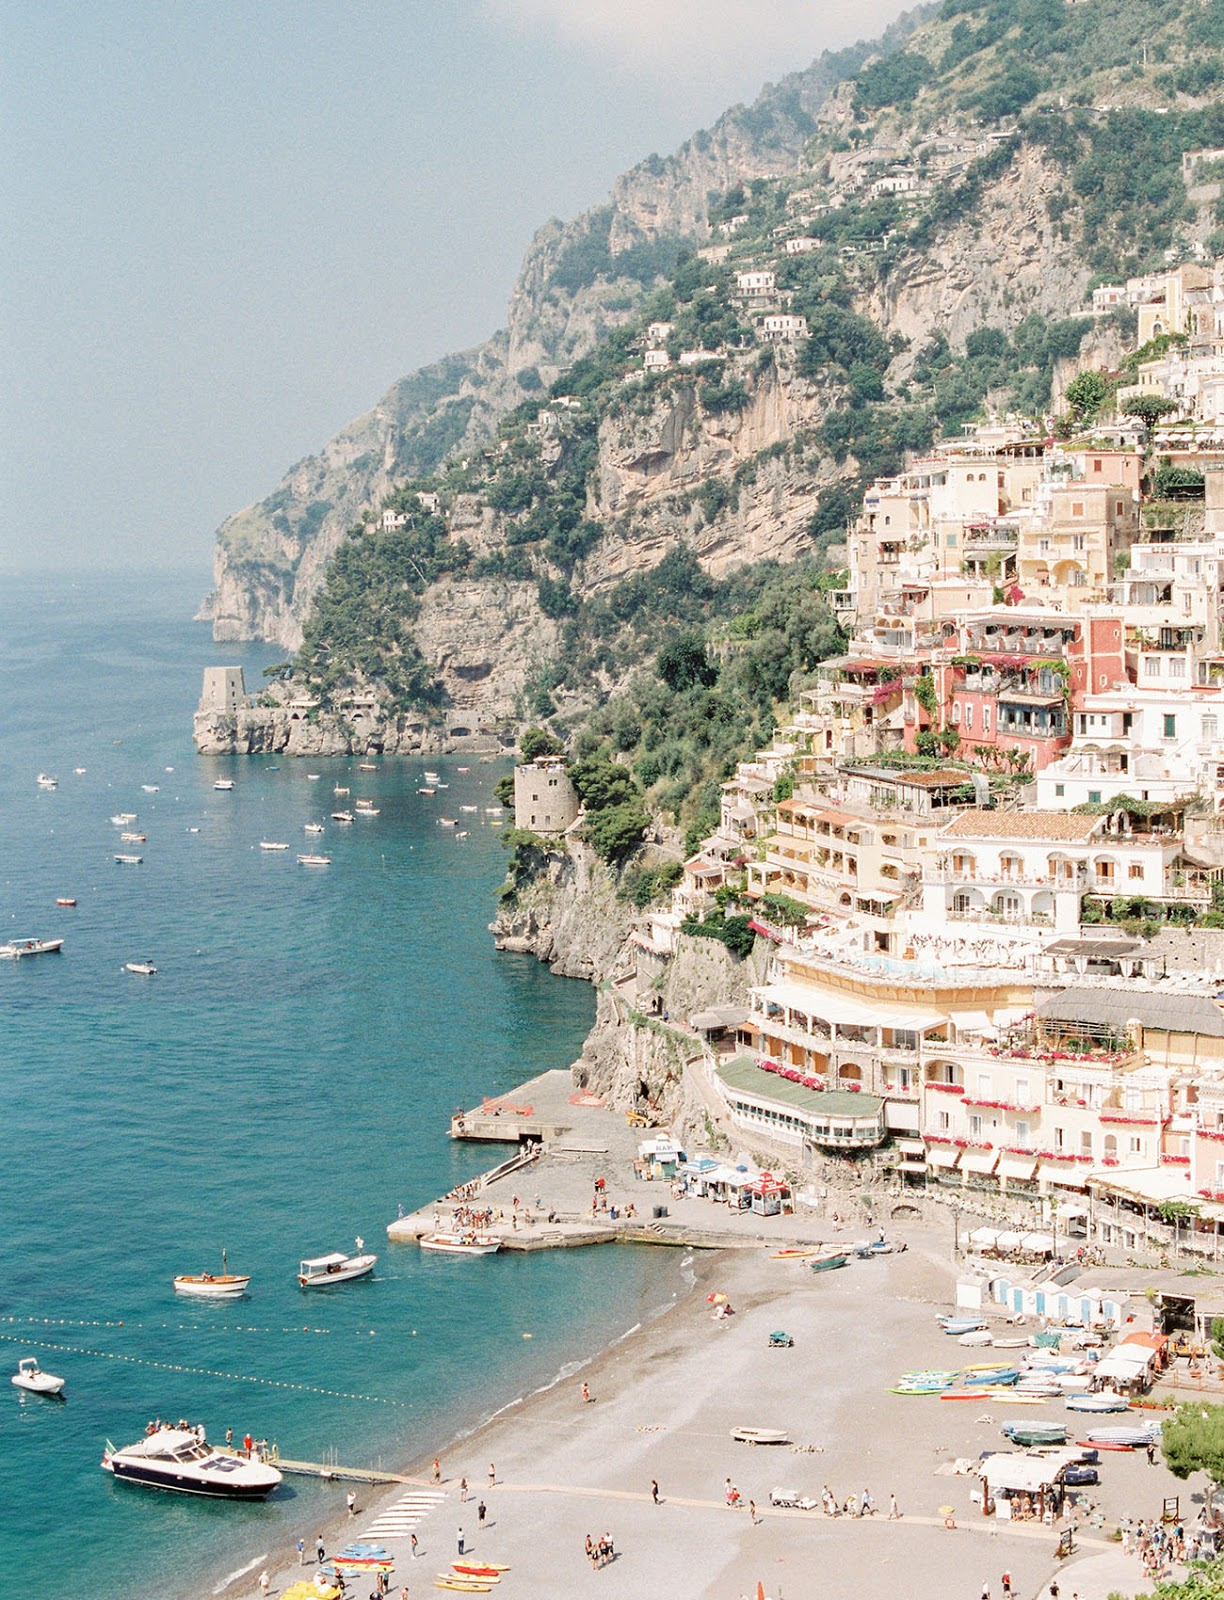 Positano is such a dreamy place